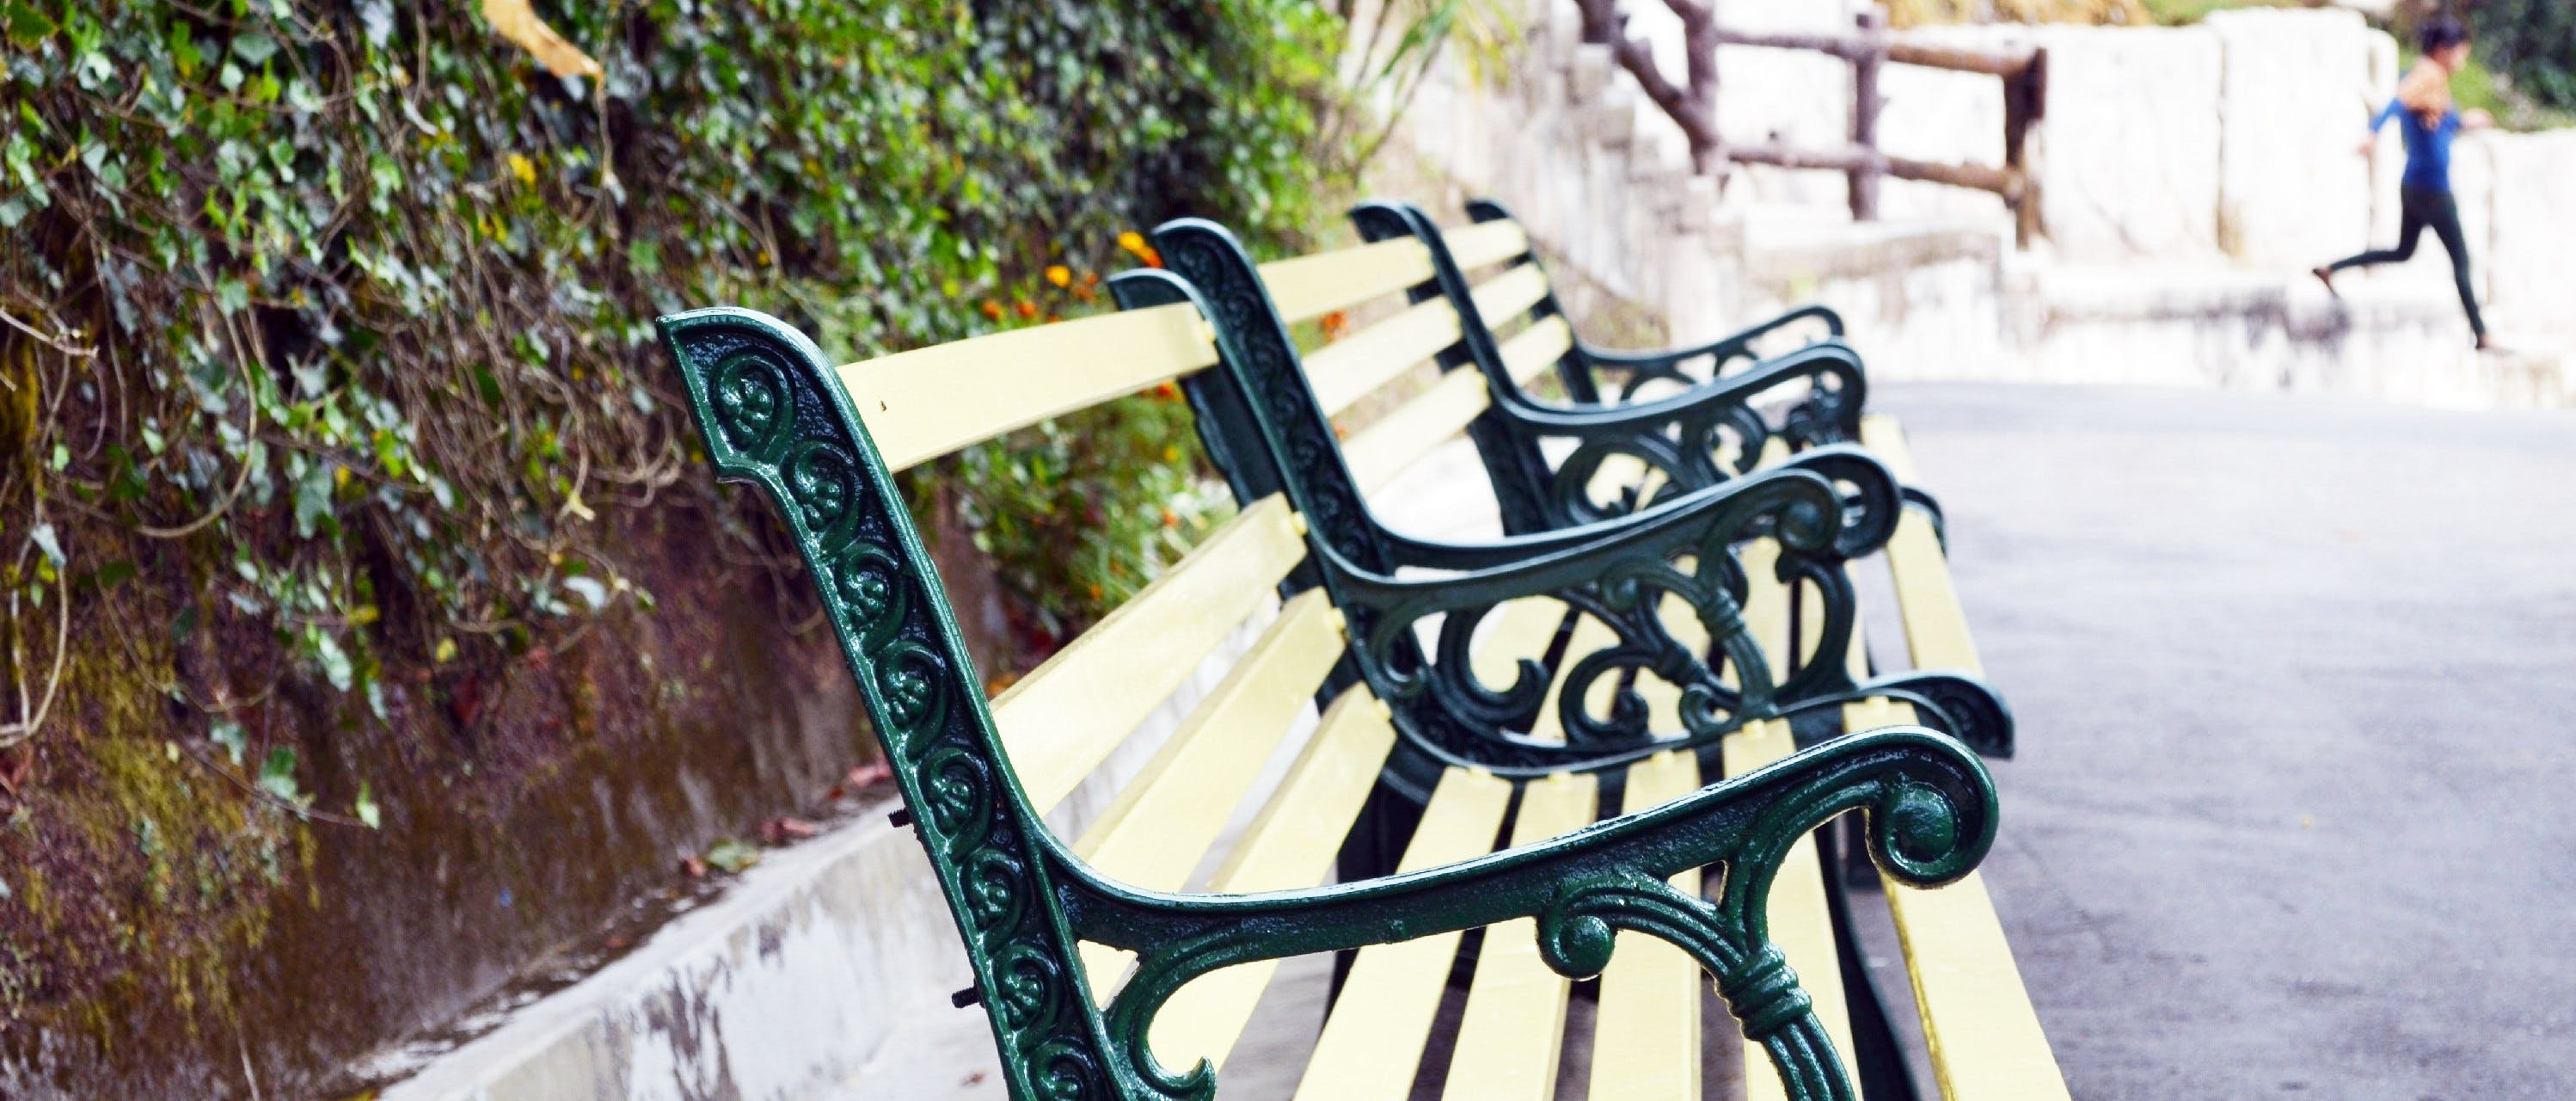 Free stock photo of chair, park bench, wooden bench